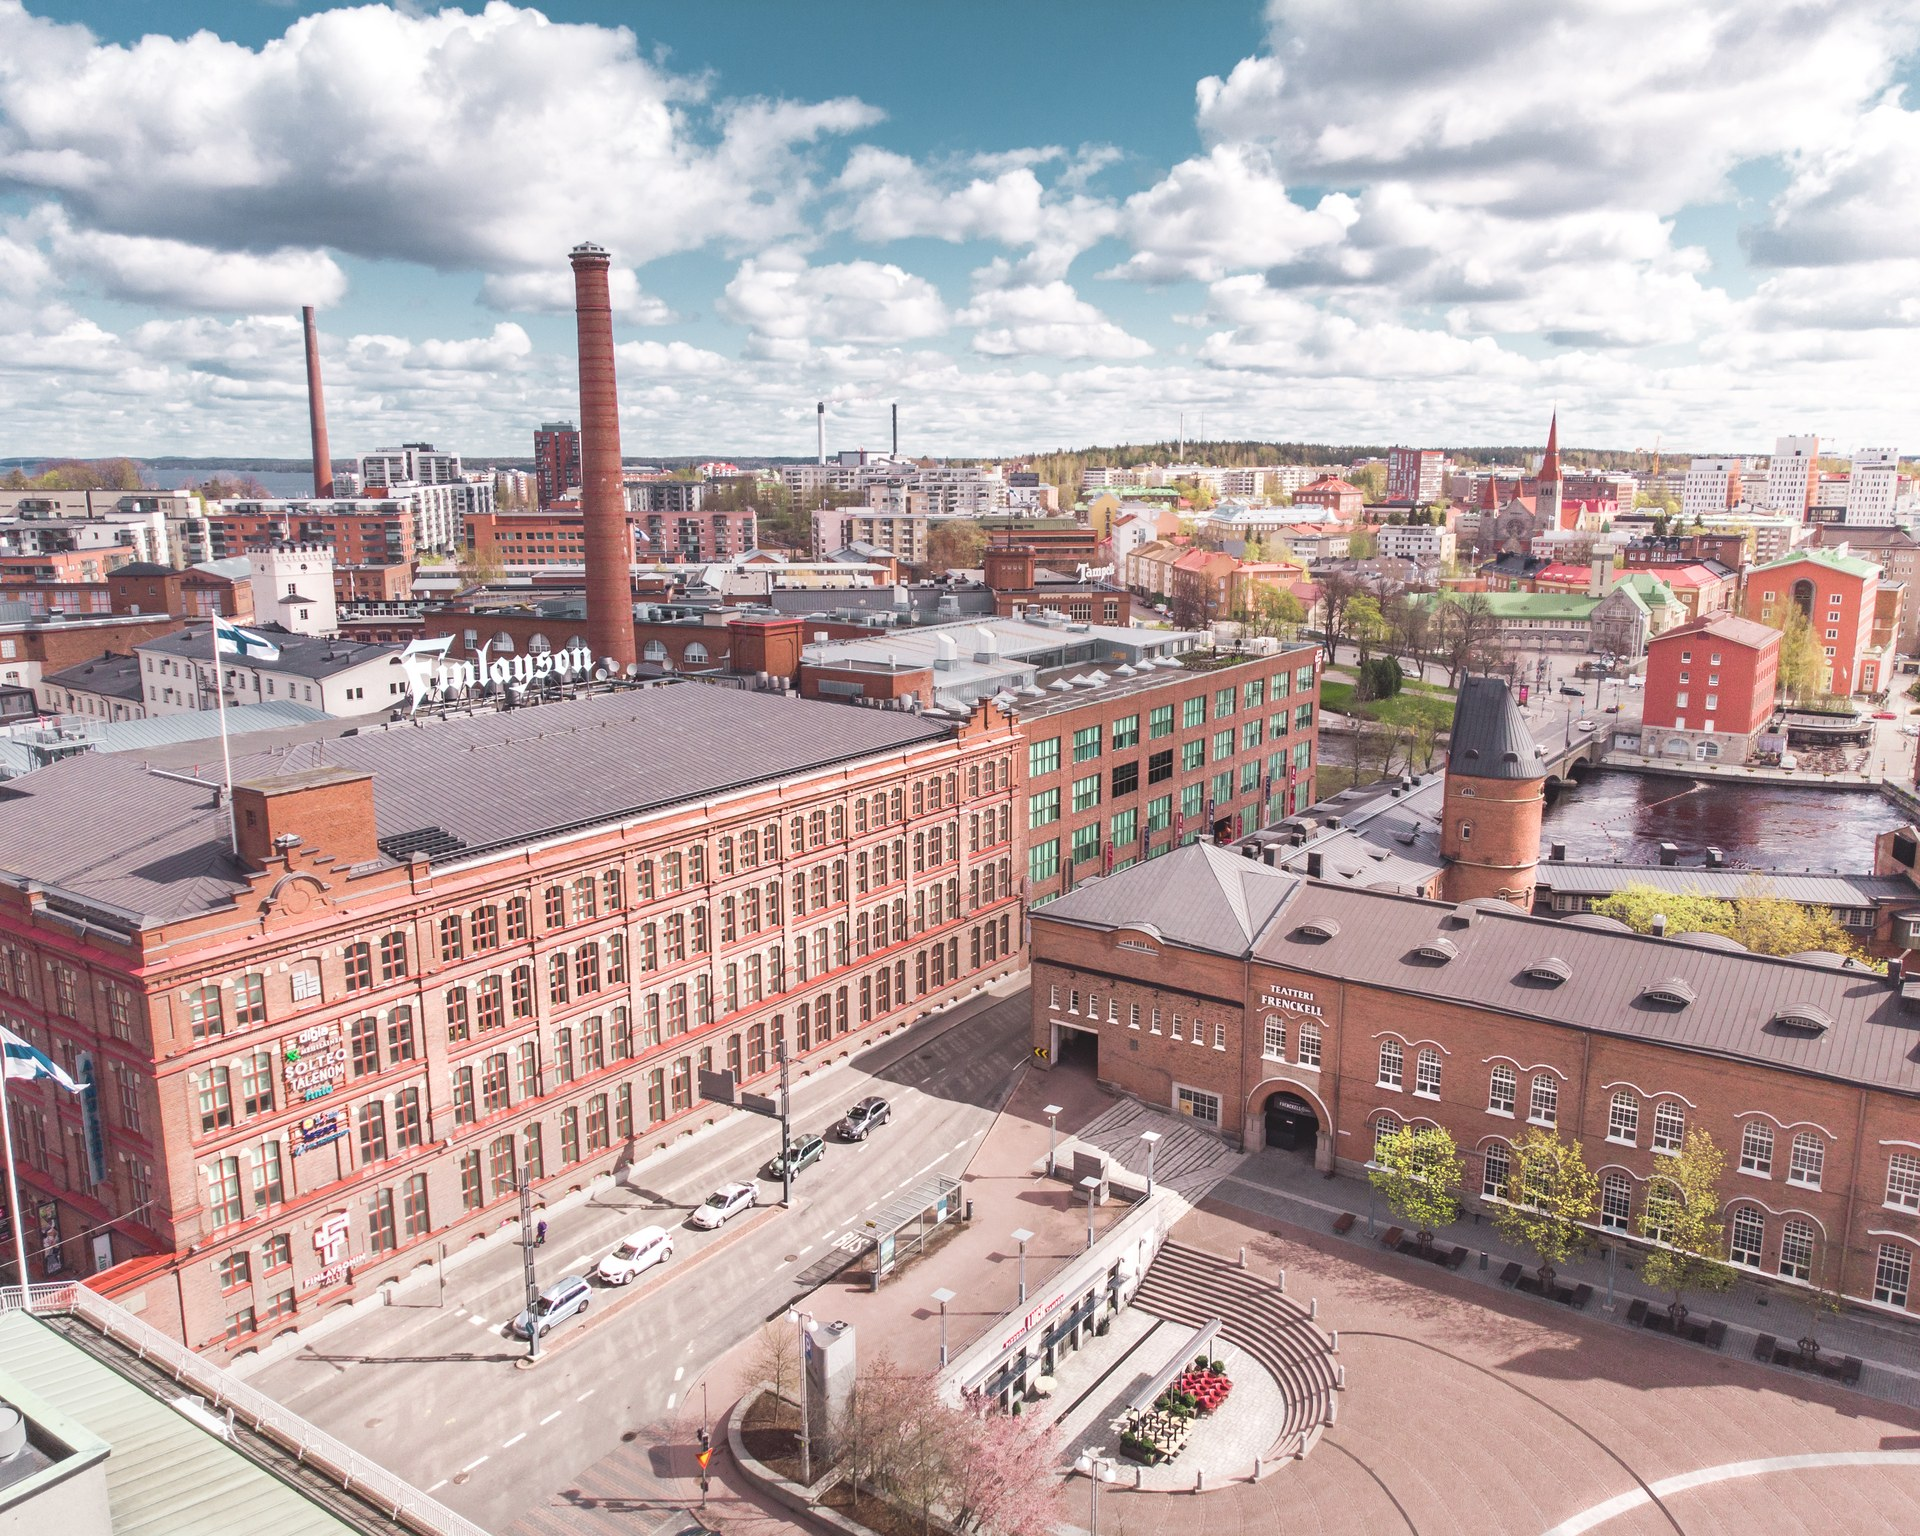 Visit Tampere Drone Spring 2020 Frenckell area Laura Vanzo 2